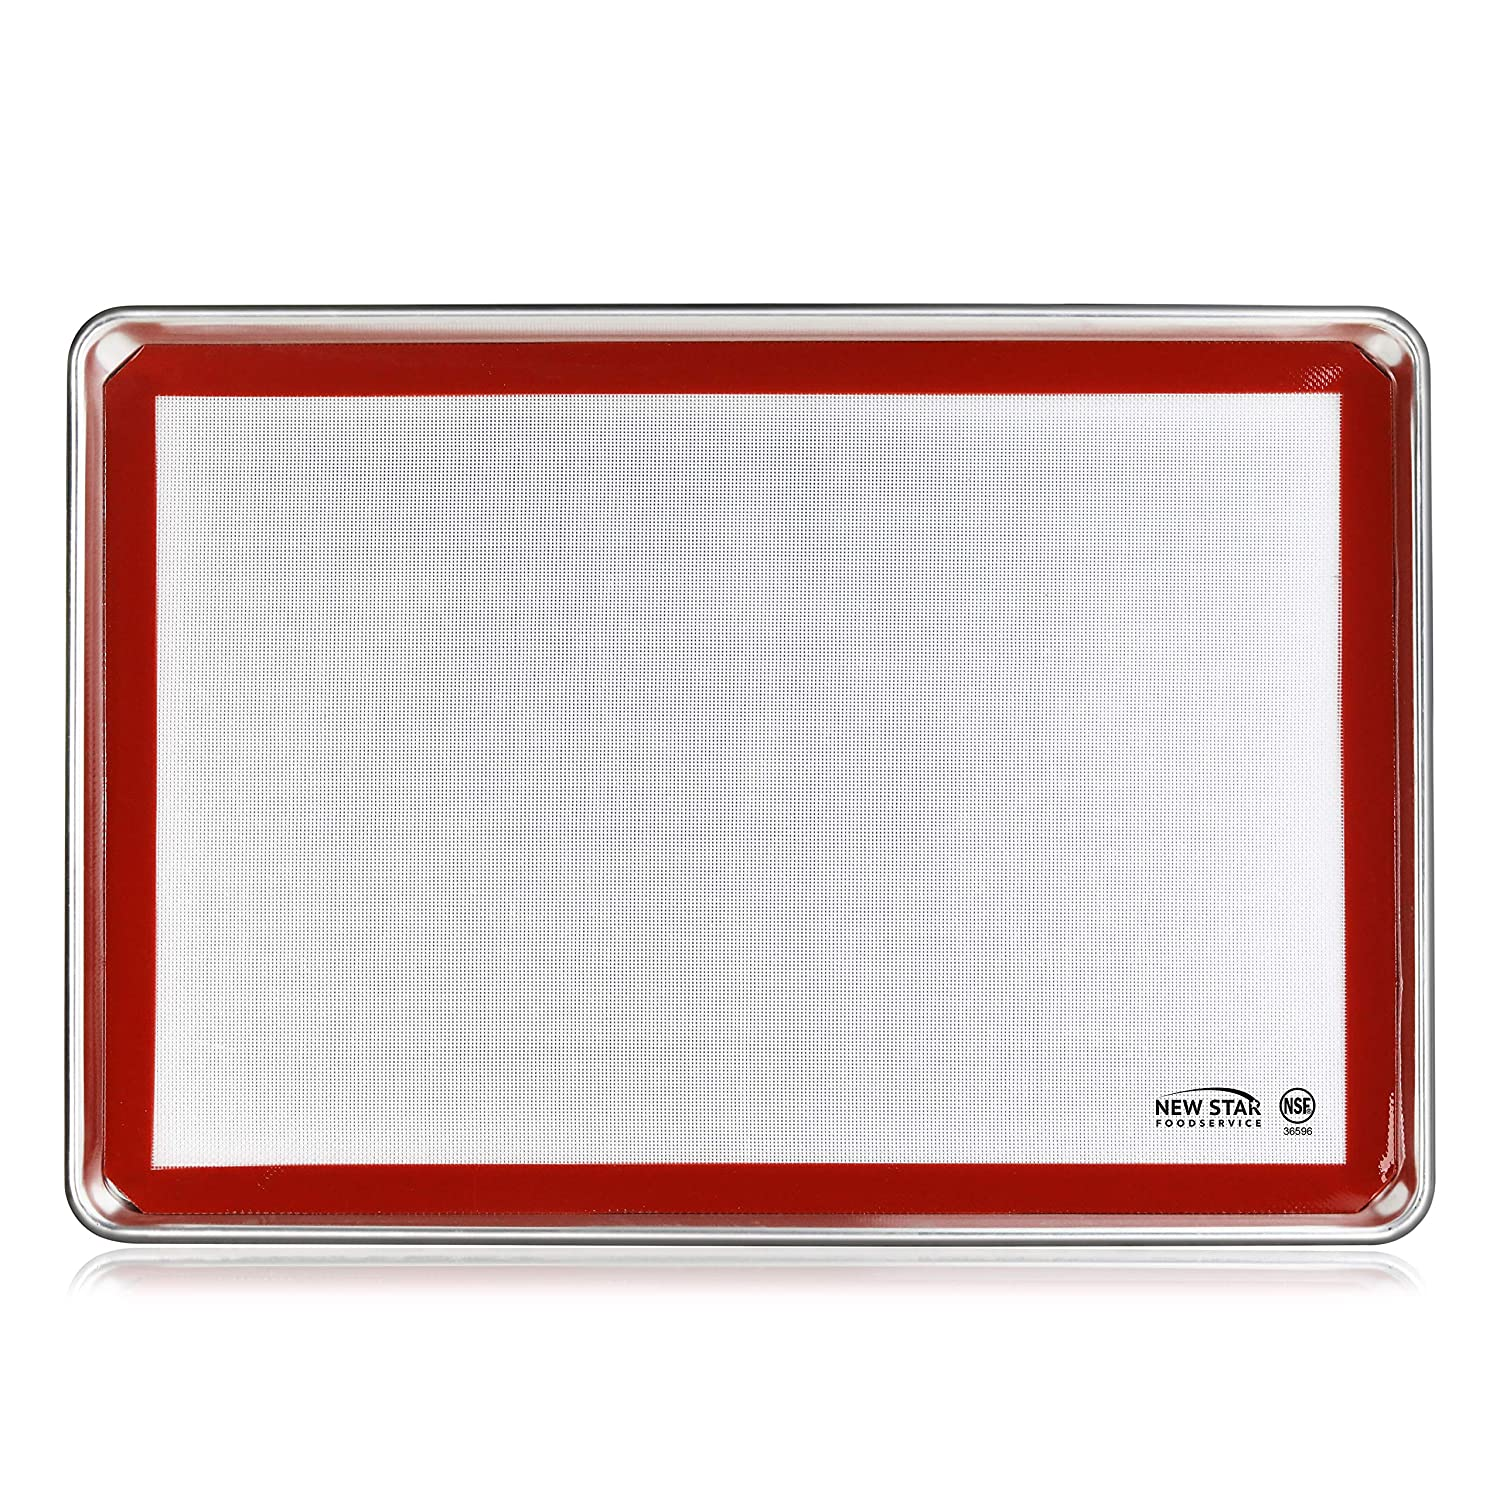 New Star Foodservice 38453 Commercial 18-Gauge Aluminum Sheet Pan and Silicone Baking Mat Set, 18 x 26 inch (Full Size)